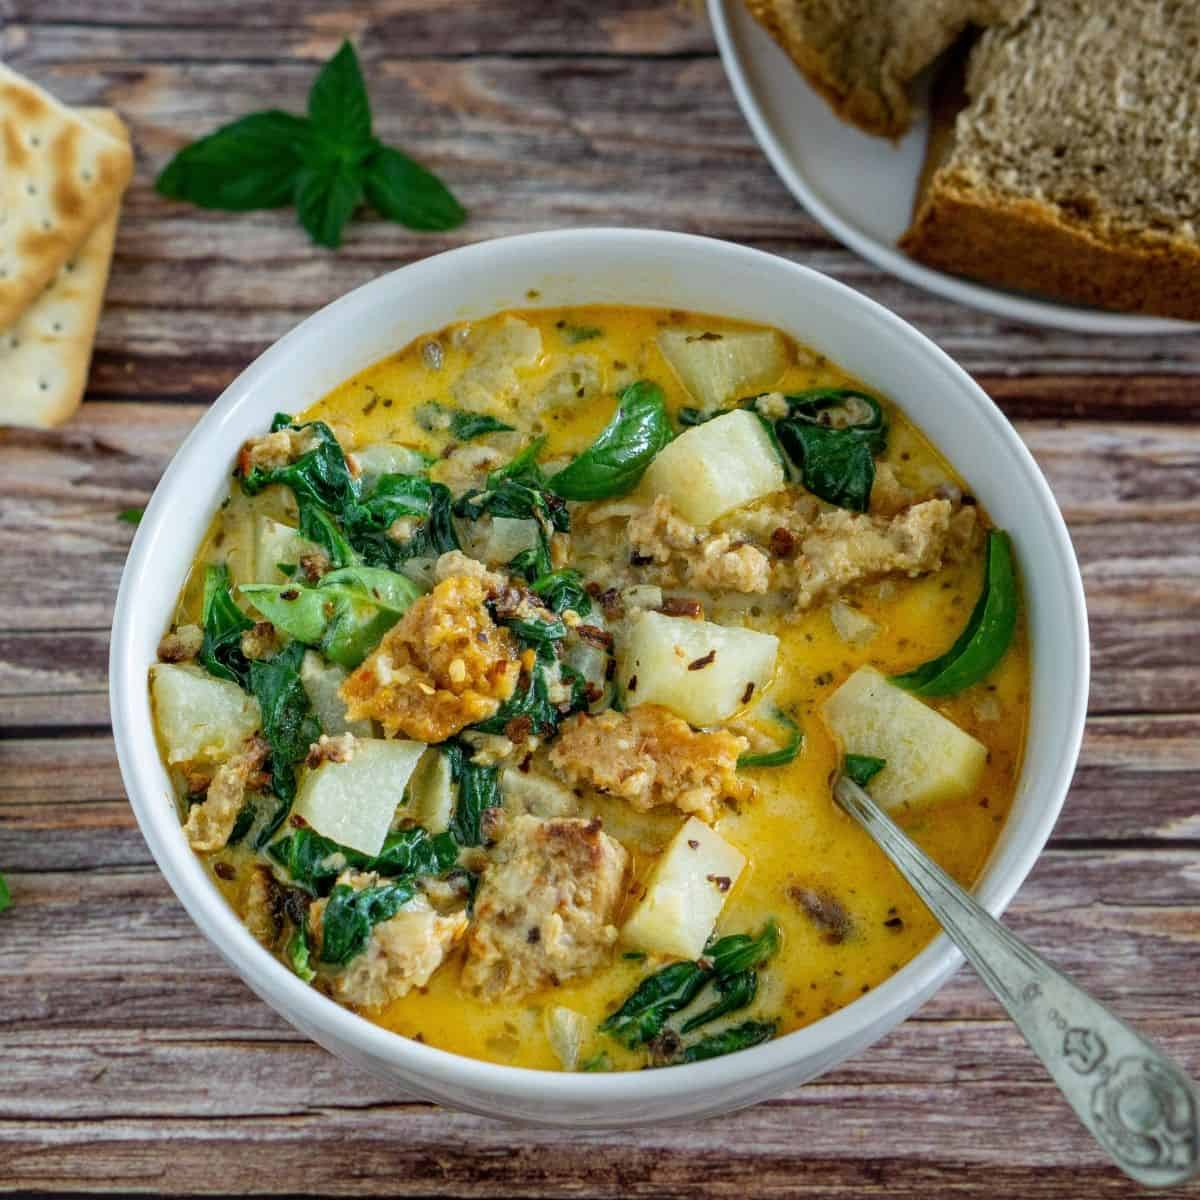 vegan zuppa toscana in a while bowl with crackers and bread on the side